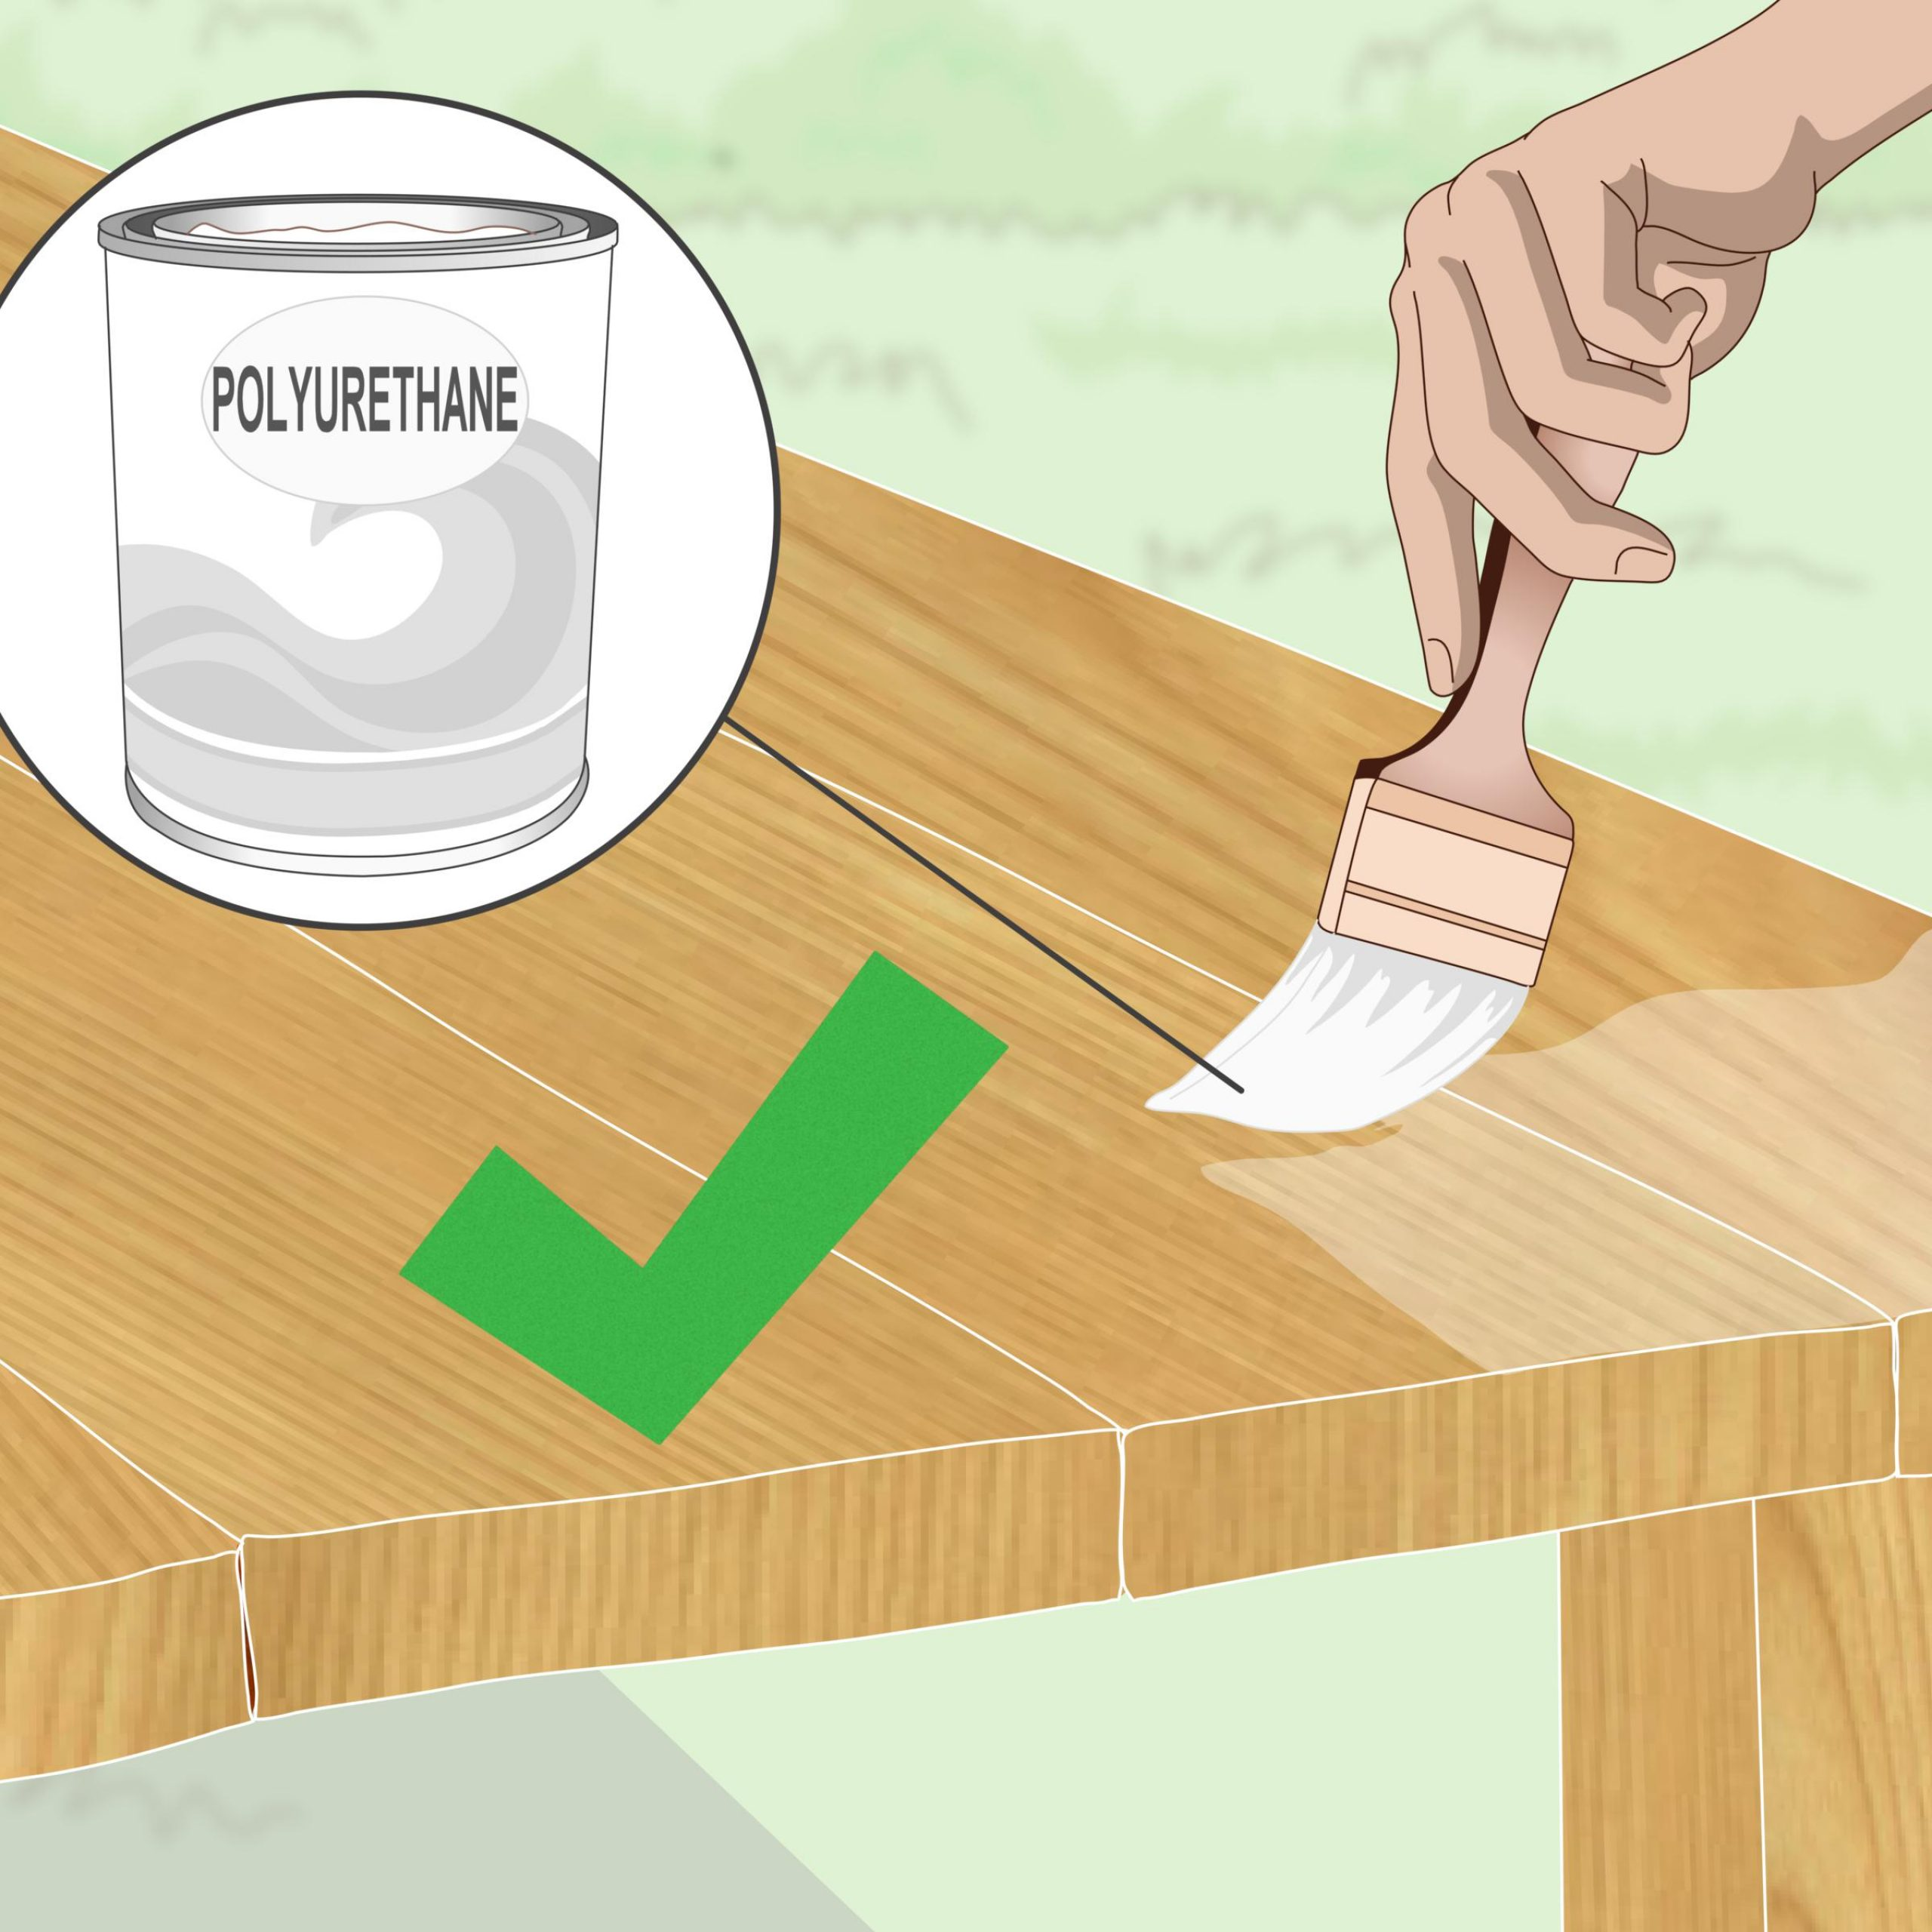 How To Stain Teak Furniture: 12 Steps (With Pictures) – Wikihow With 3 Person Light Teak Oil Wood Outdoor Swings (View 20 of 25)